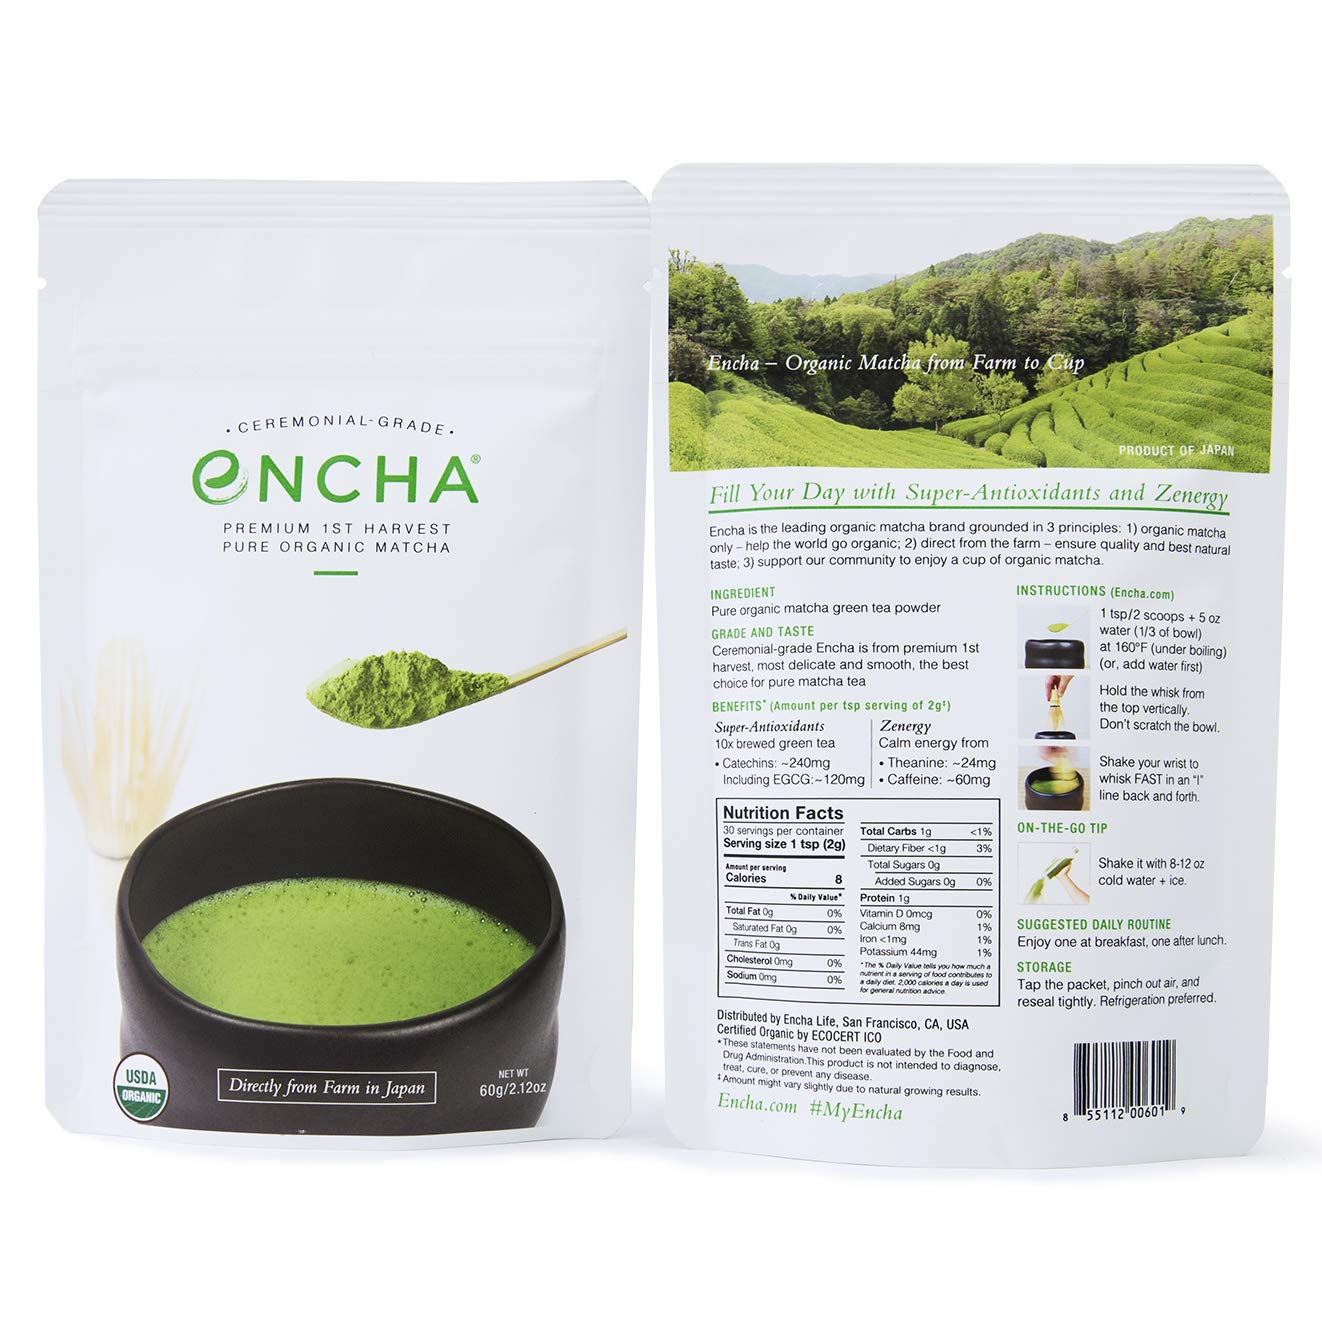 Encha Ceremonial Organic Matcha (USDA Organic Certificate and Antioxidant Content Listed, Premium First Harvest Directly from Farm in Uji, Japan, 60g/2.12oz in Resealable Pouch) by Encha (Image #2)